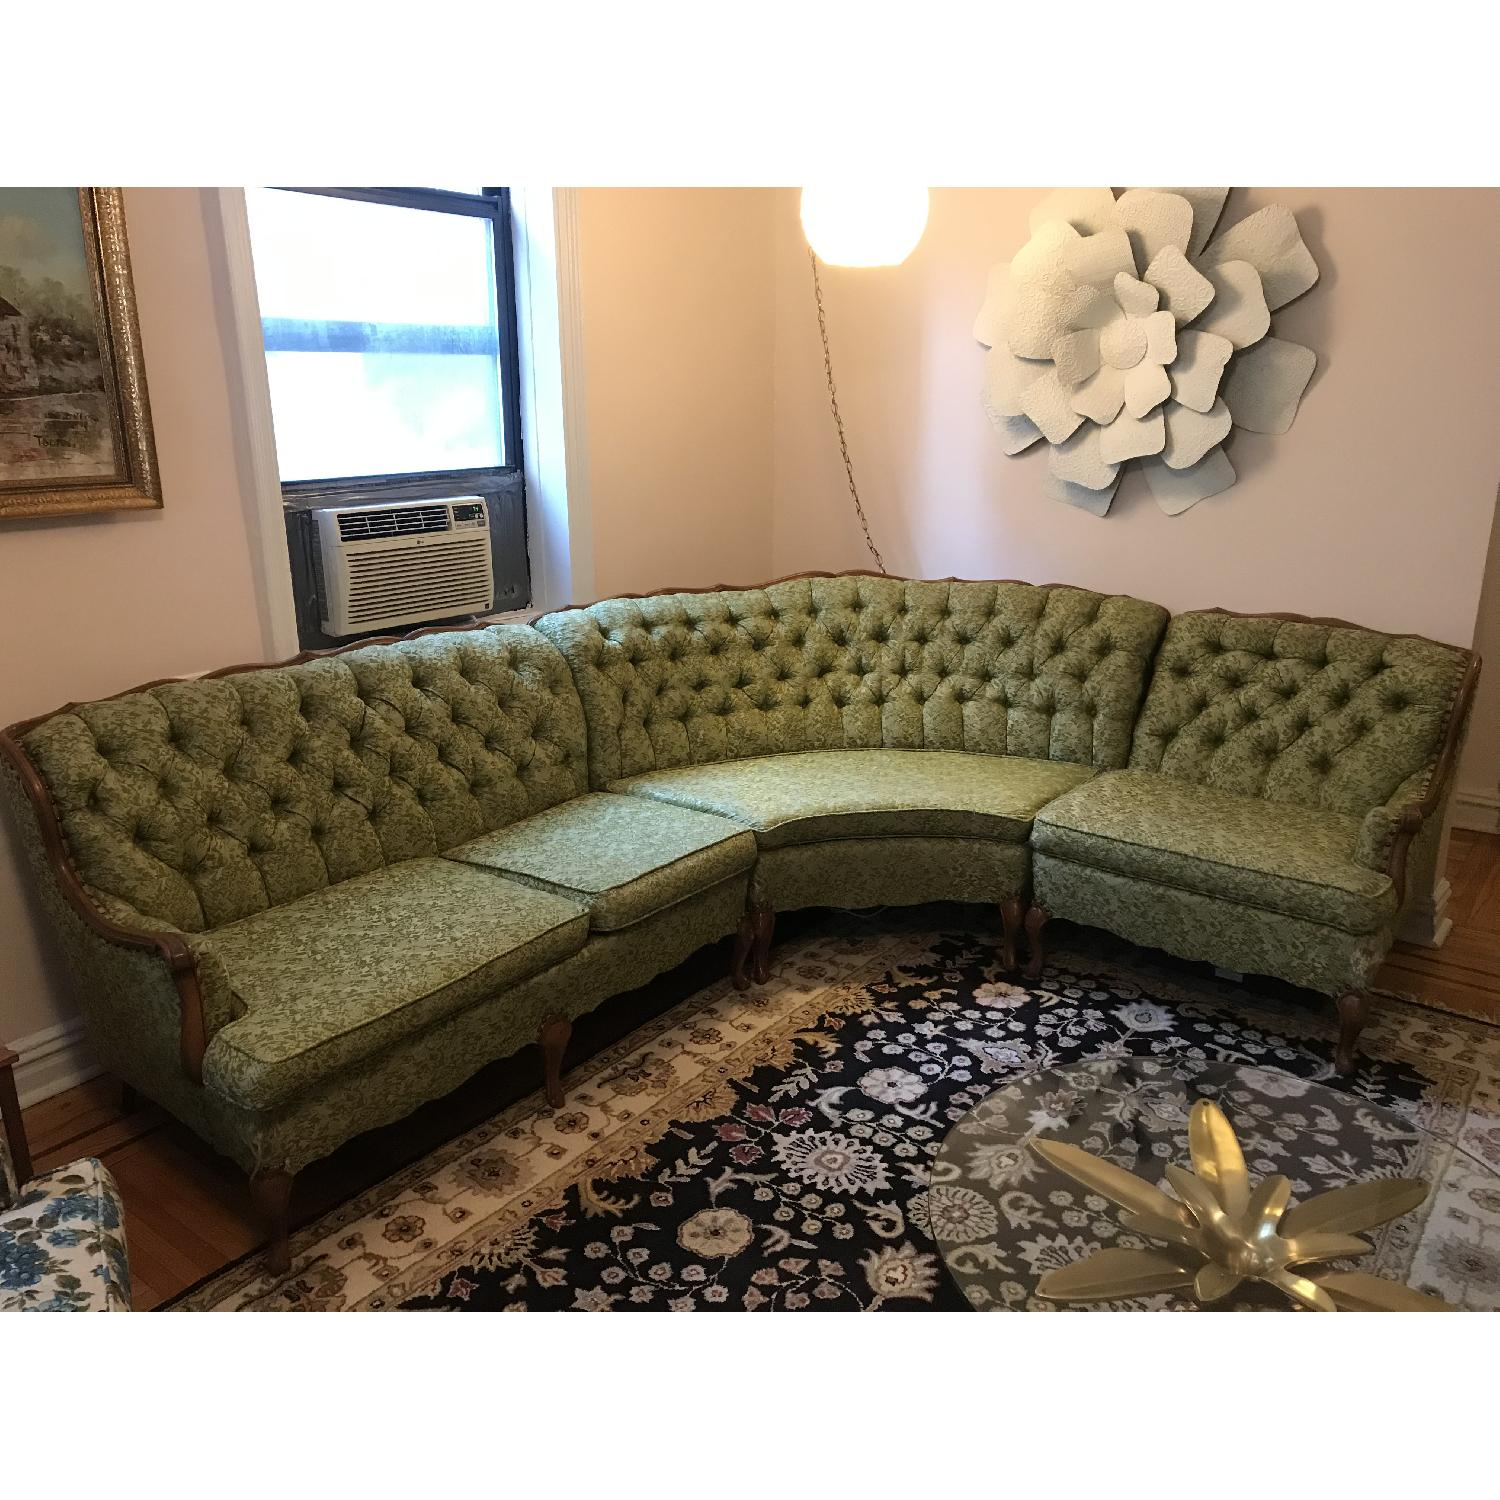 Vintage 1970s French Provincial Tufted Curved Sectional Sofa - image-1